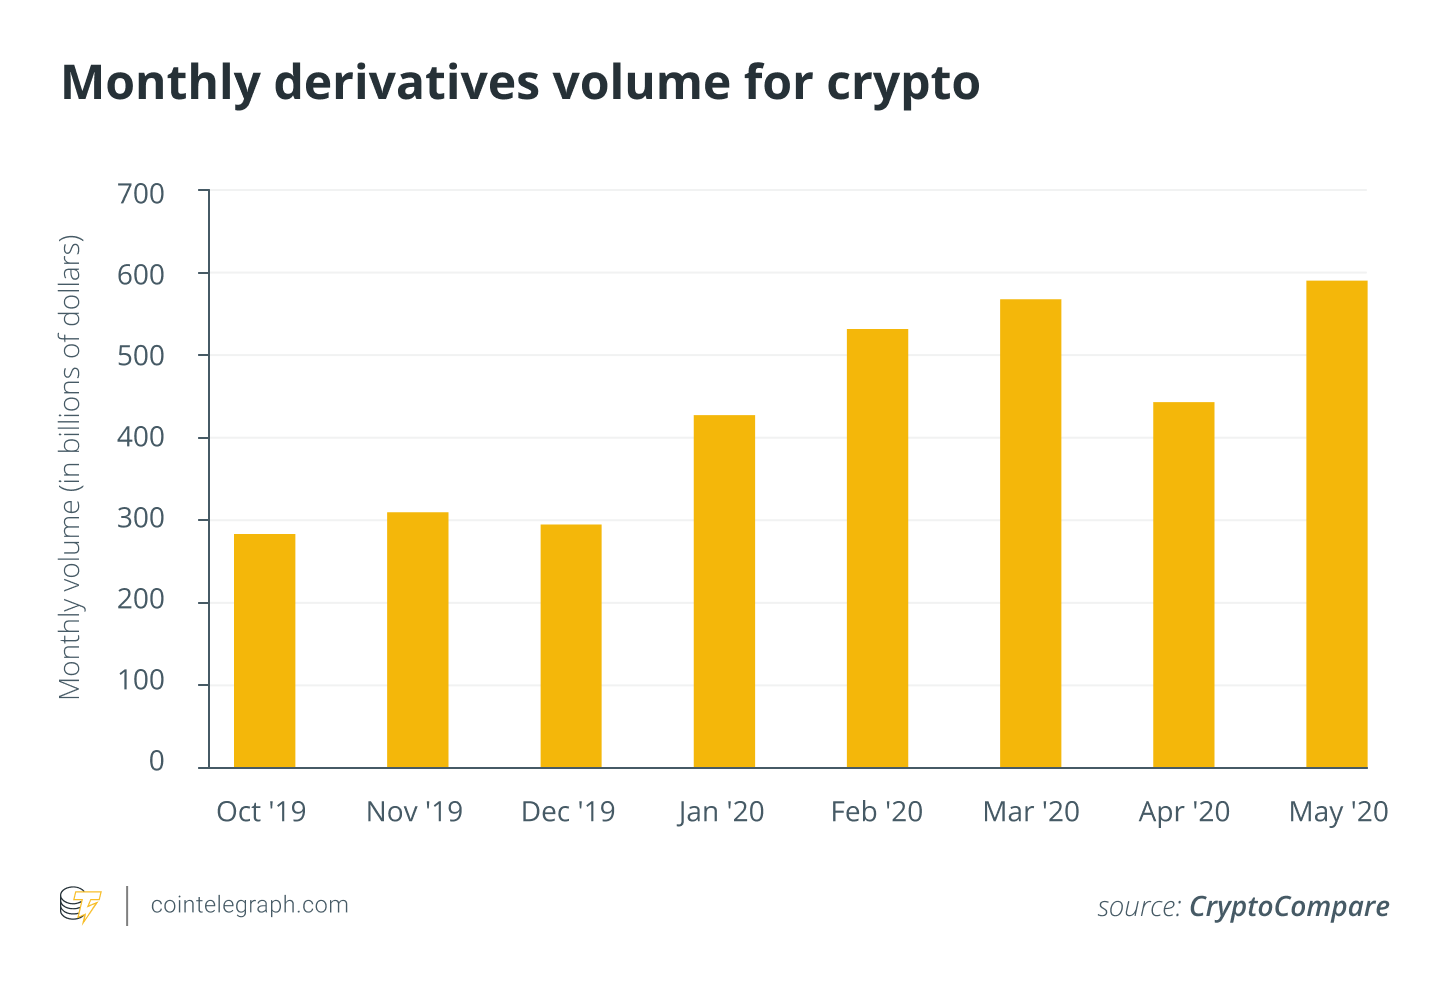 Monthly derivatives volume for crypto